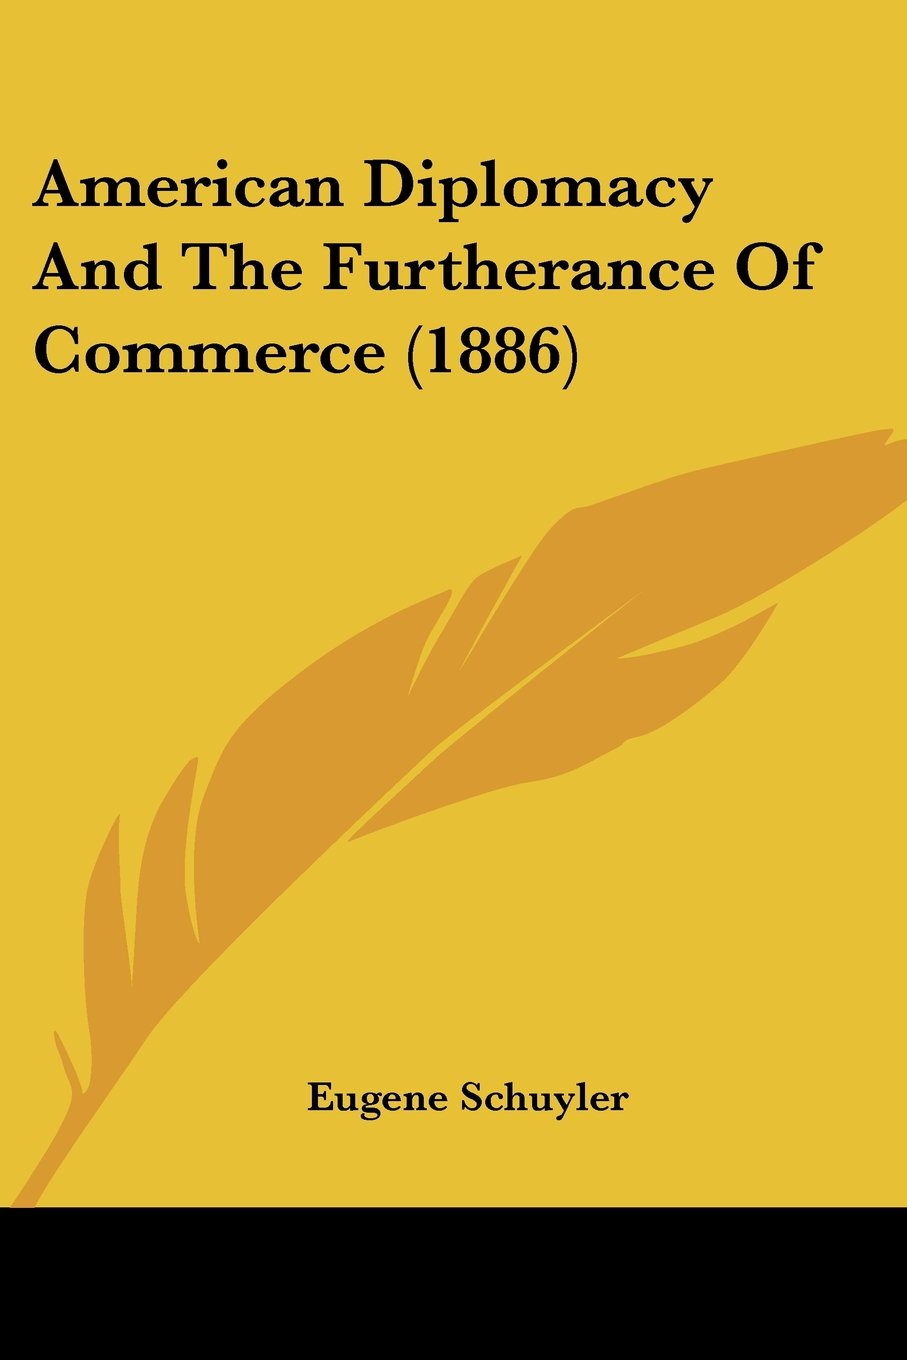 American Diplomacy And The Furtherance Of Commerce (1886) PDF